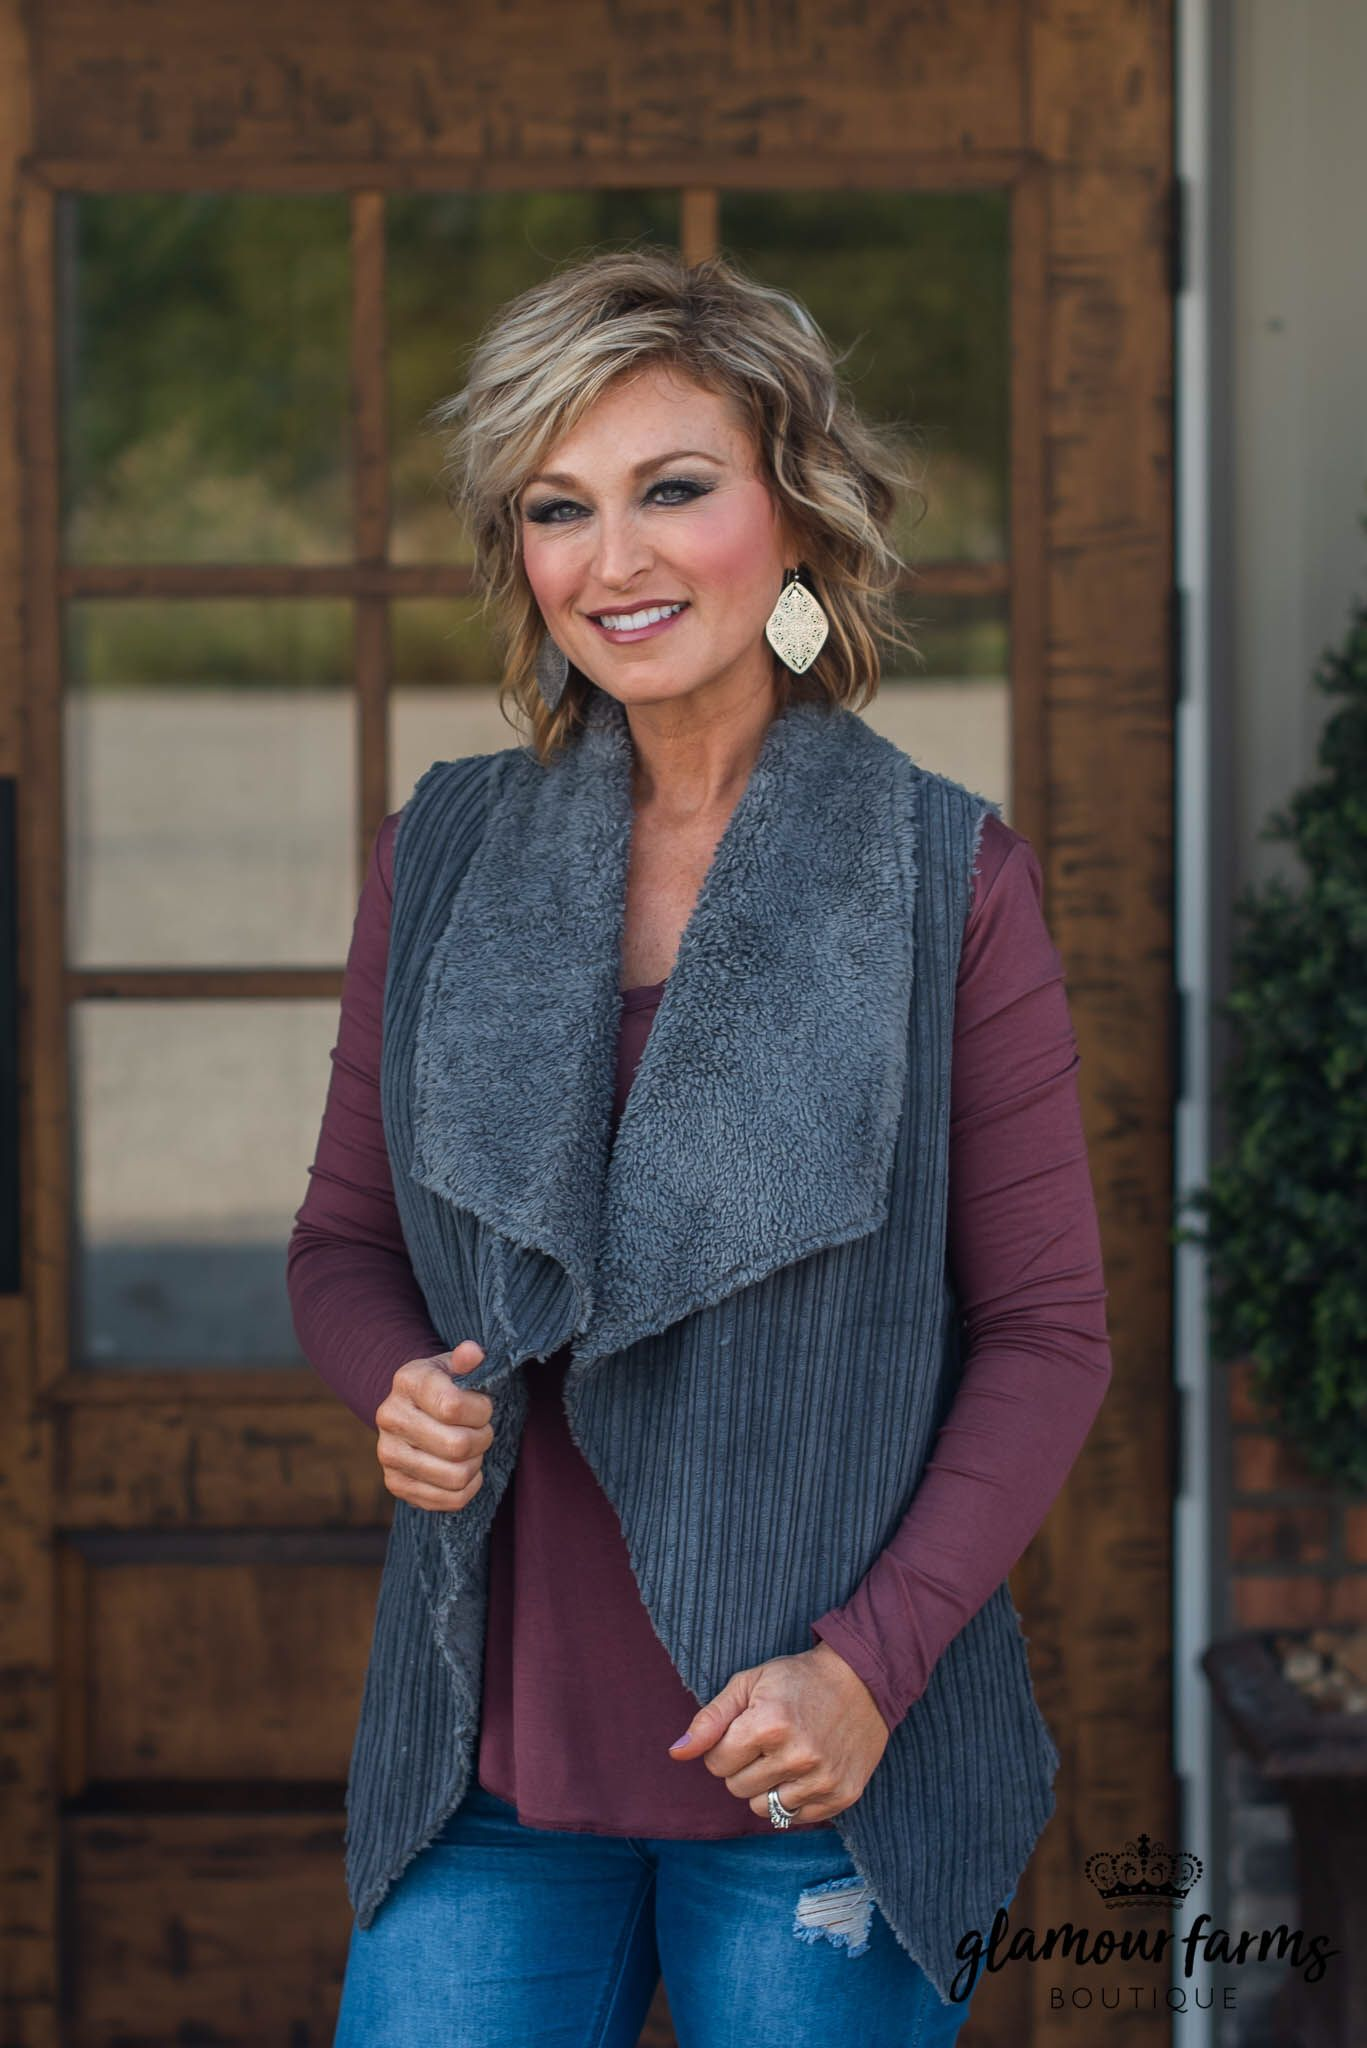 Pin by Glamour Farms Boutique on Fall 2018 Look Book in 2019 ... b06bd1960